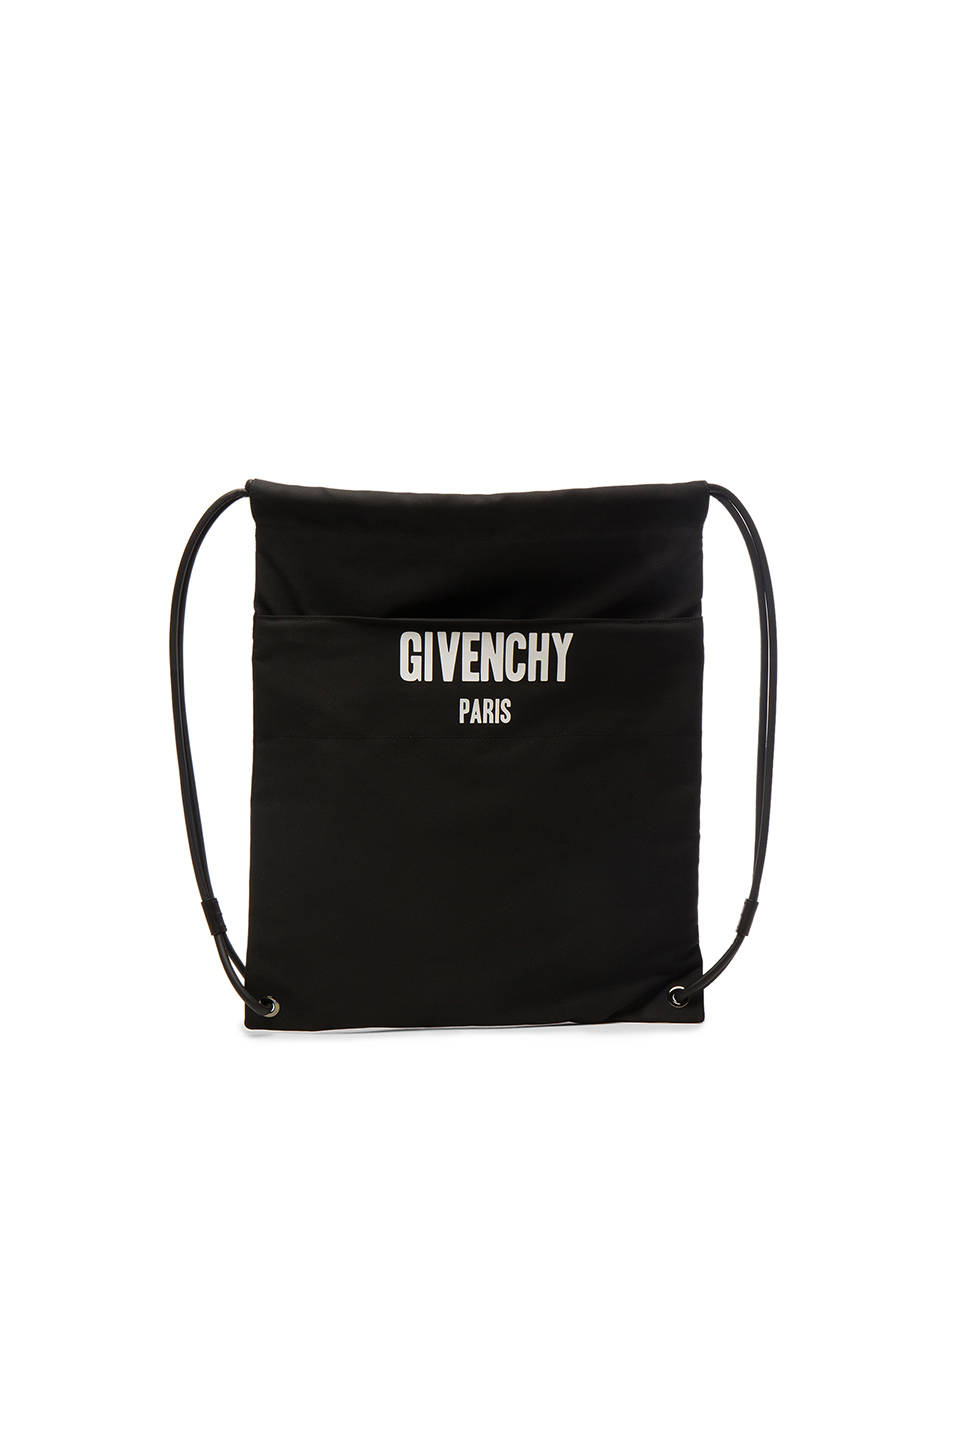 Givenchy Drawstring Bag in Black